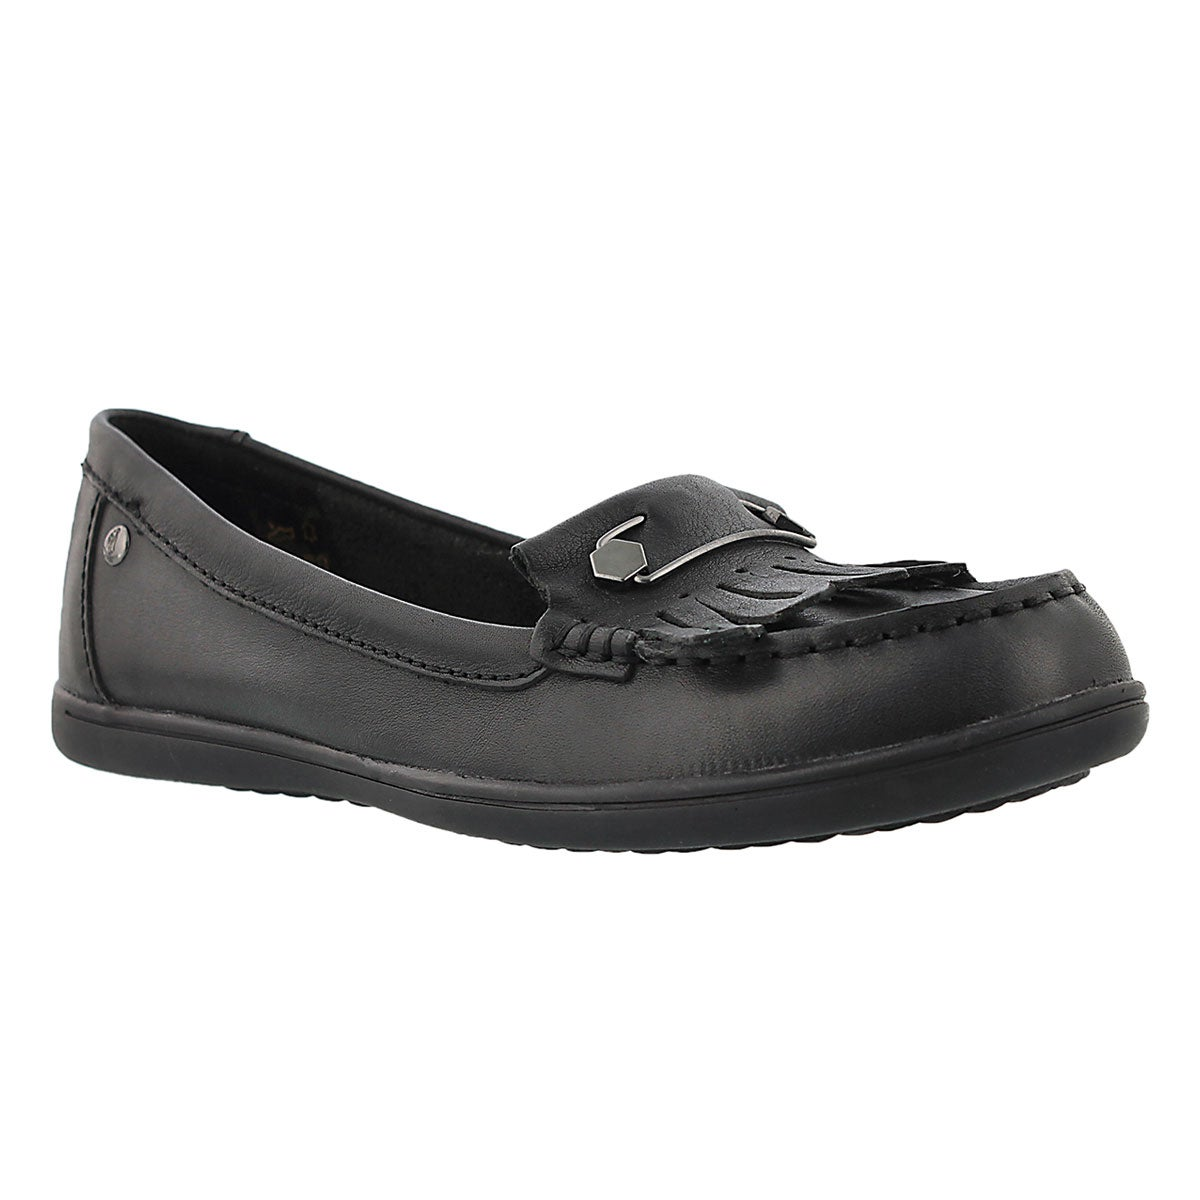 Women's RYLIE CLAUDINE black leather moccasins